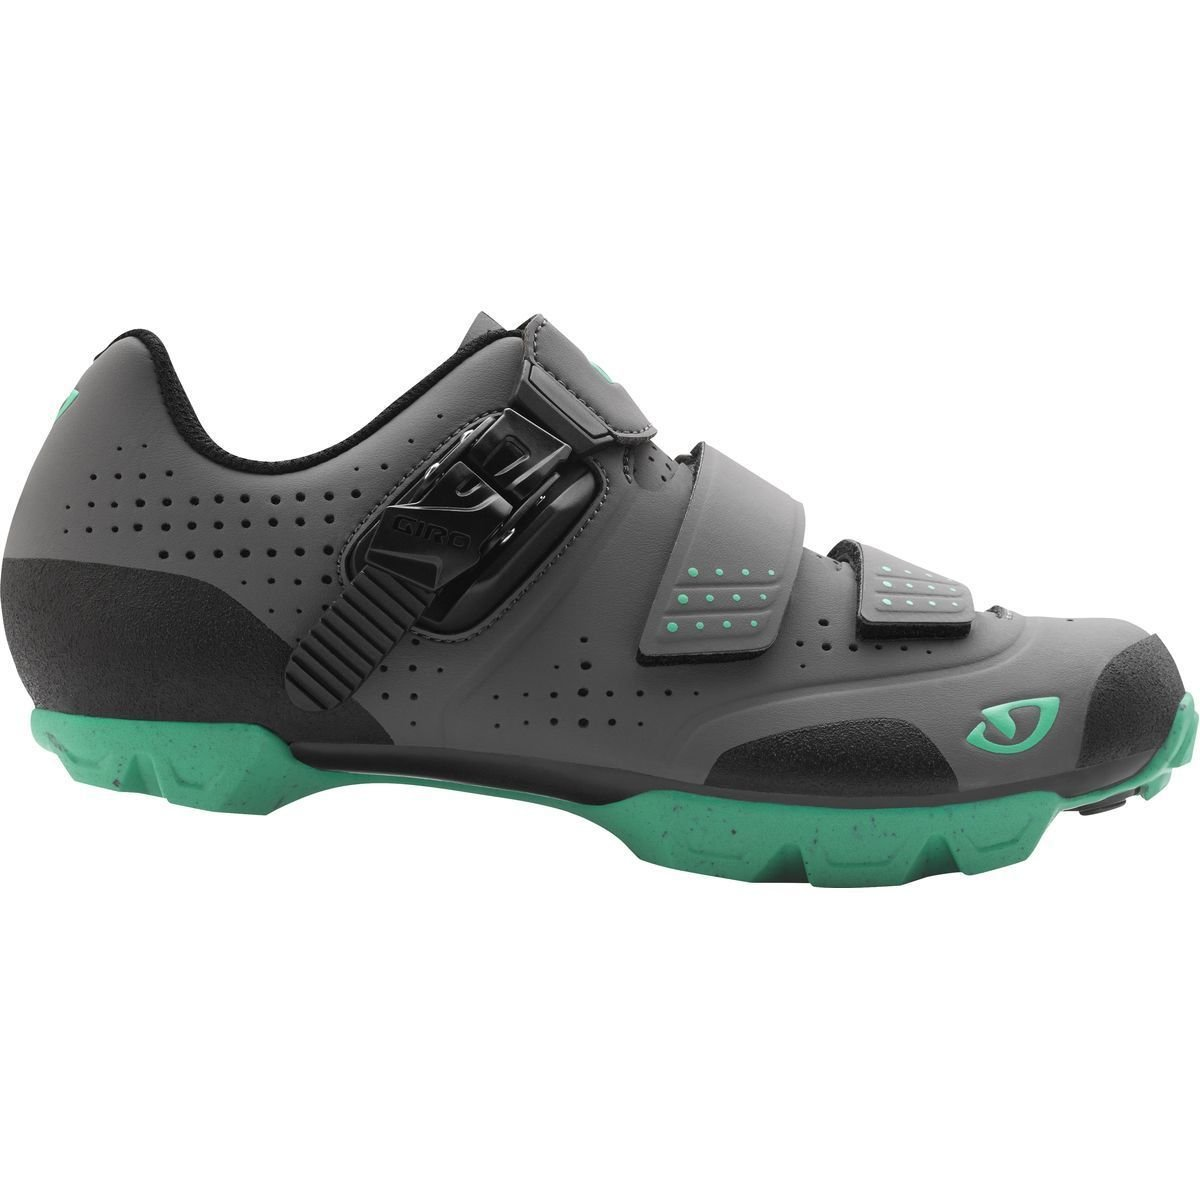 Giro 2017 Womens Manta R Dirt Cycling Shoes (Charcoal/Turquoise - 37.5) by Giro